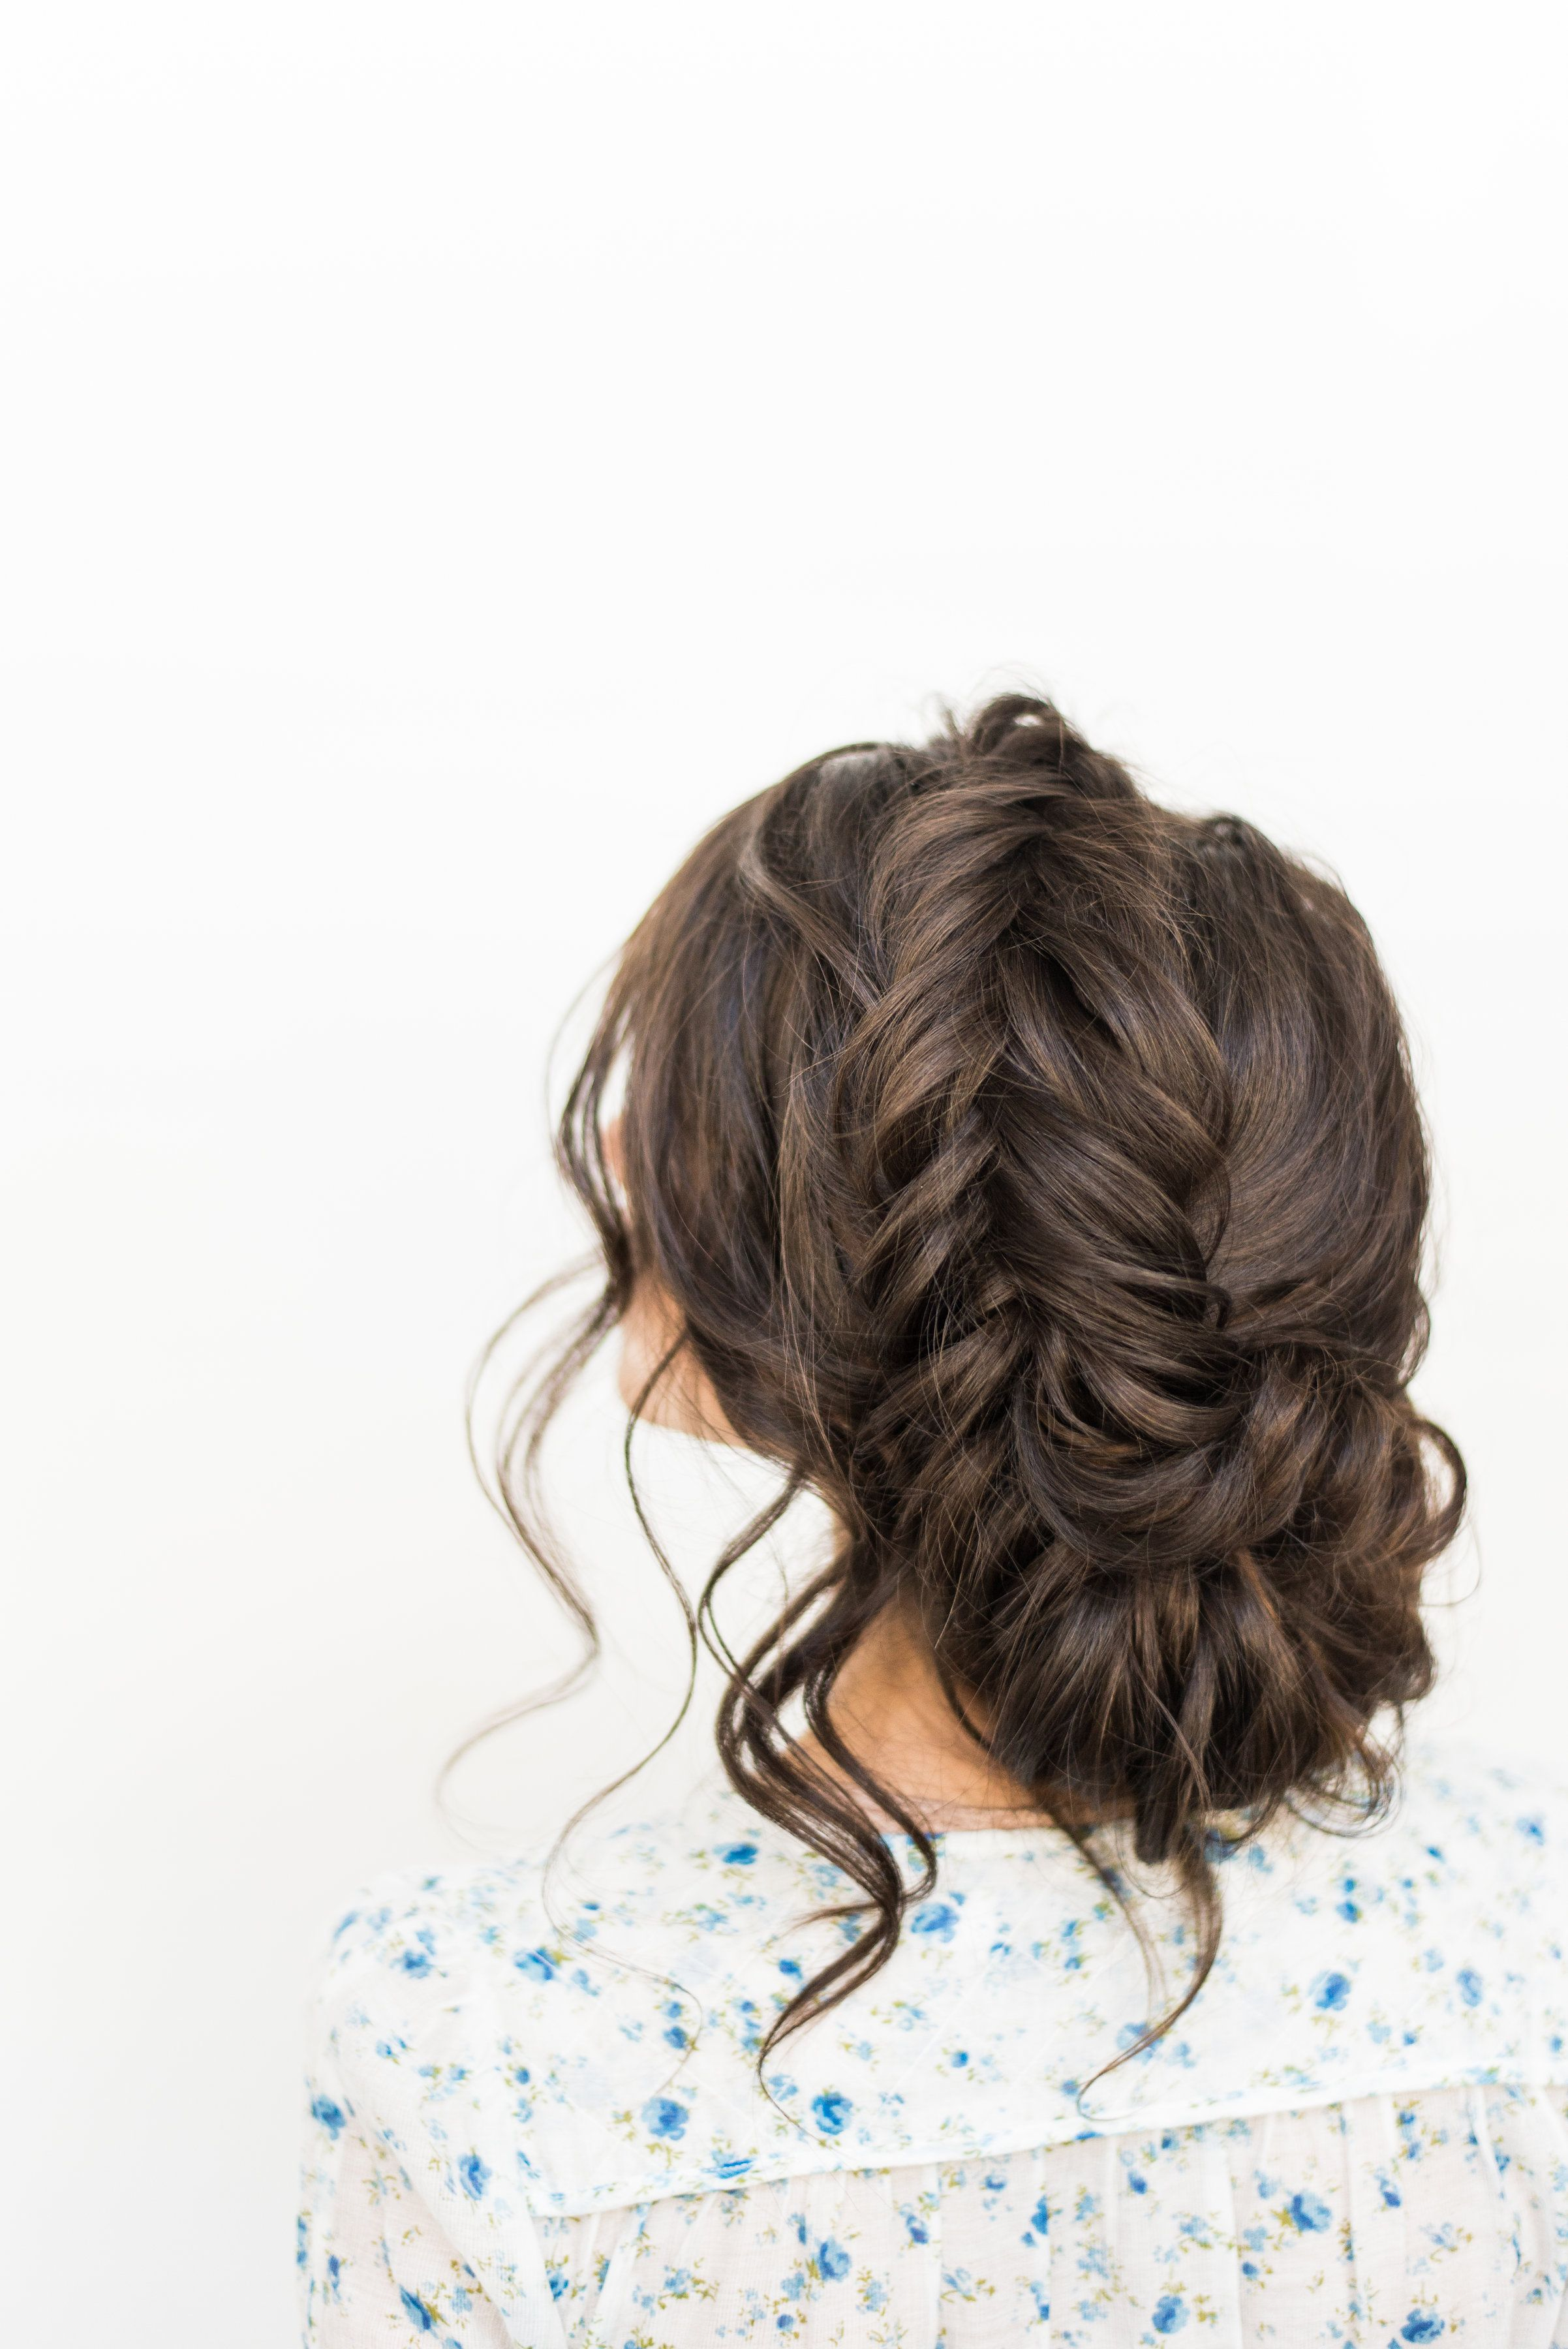 Pin by LENA on hair | Pinterest | Fishtail plaits, Fishtail and Dutch